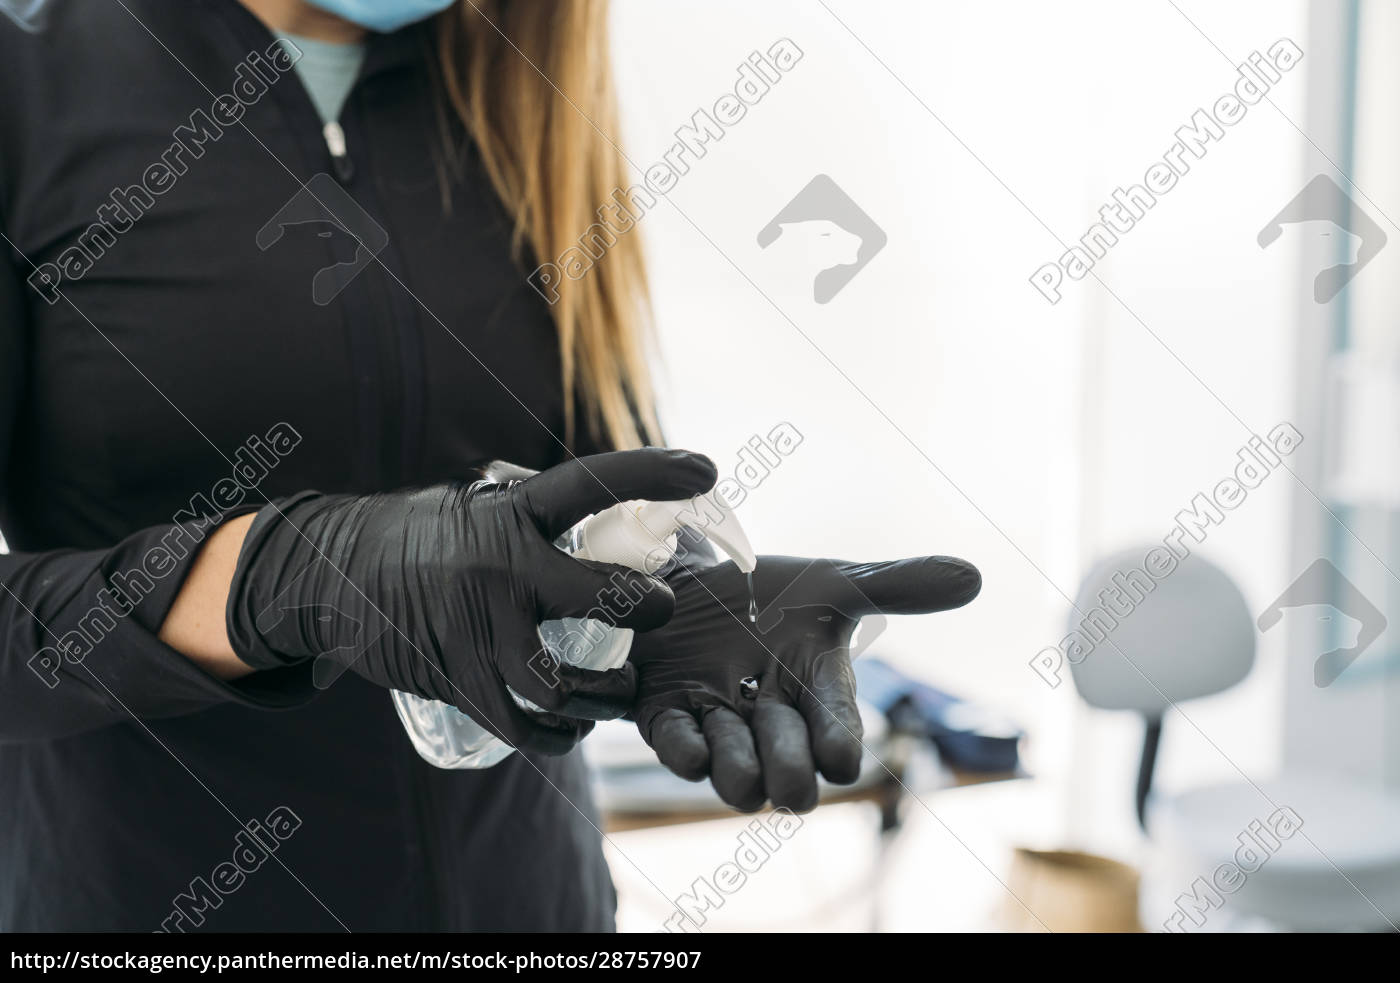 woman, wearing, protectivegloves, using, hand, sanitizer - 28757907